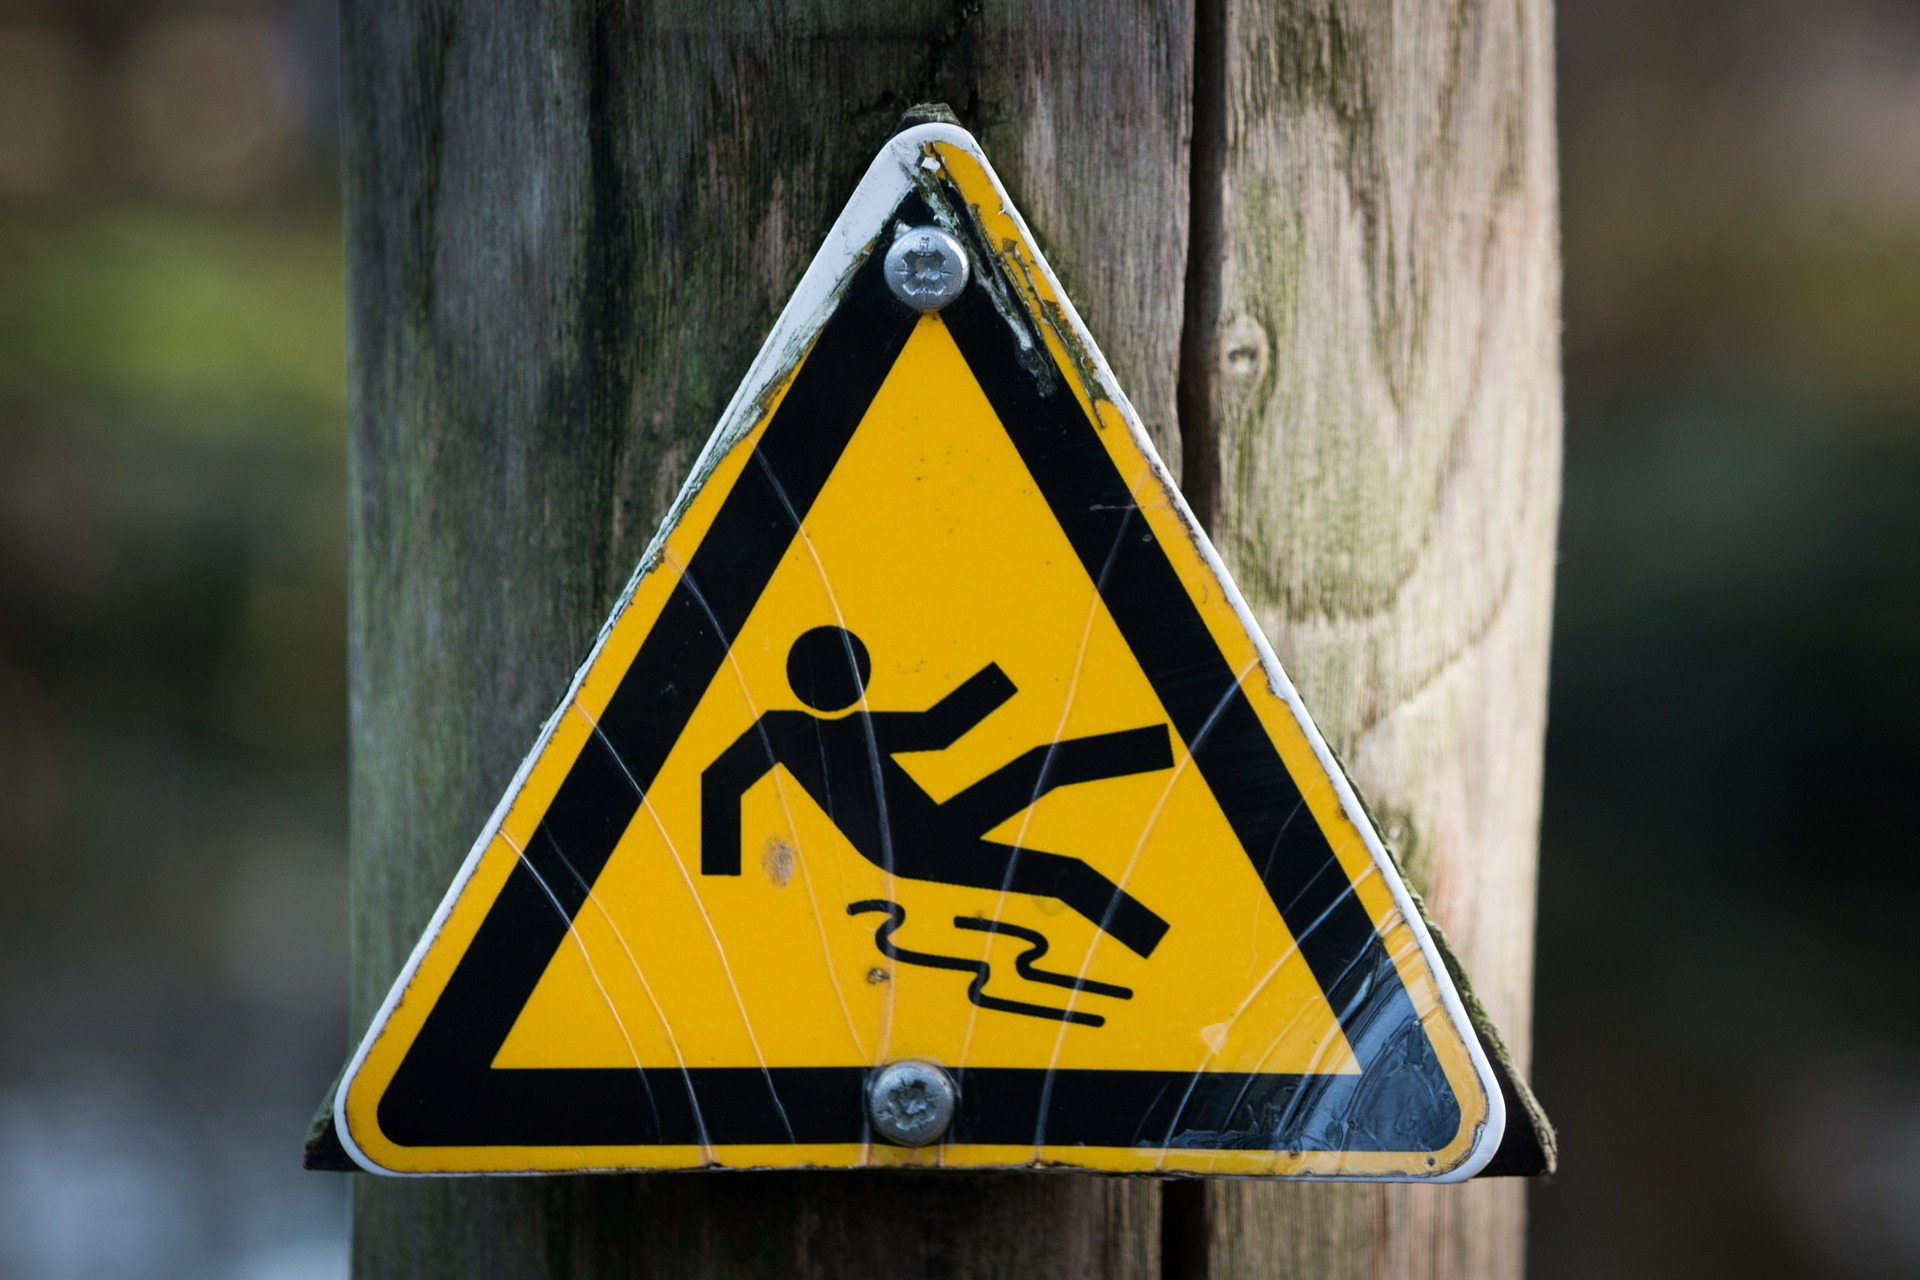 slippery warning sign on wooden post